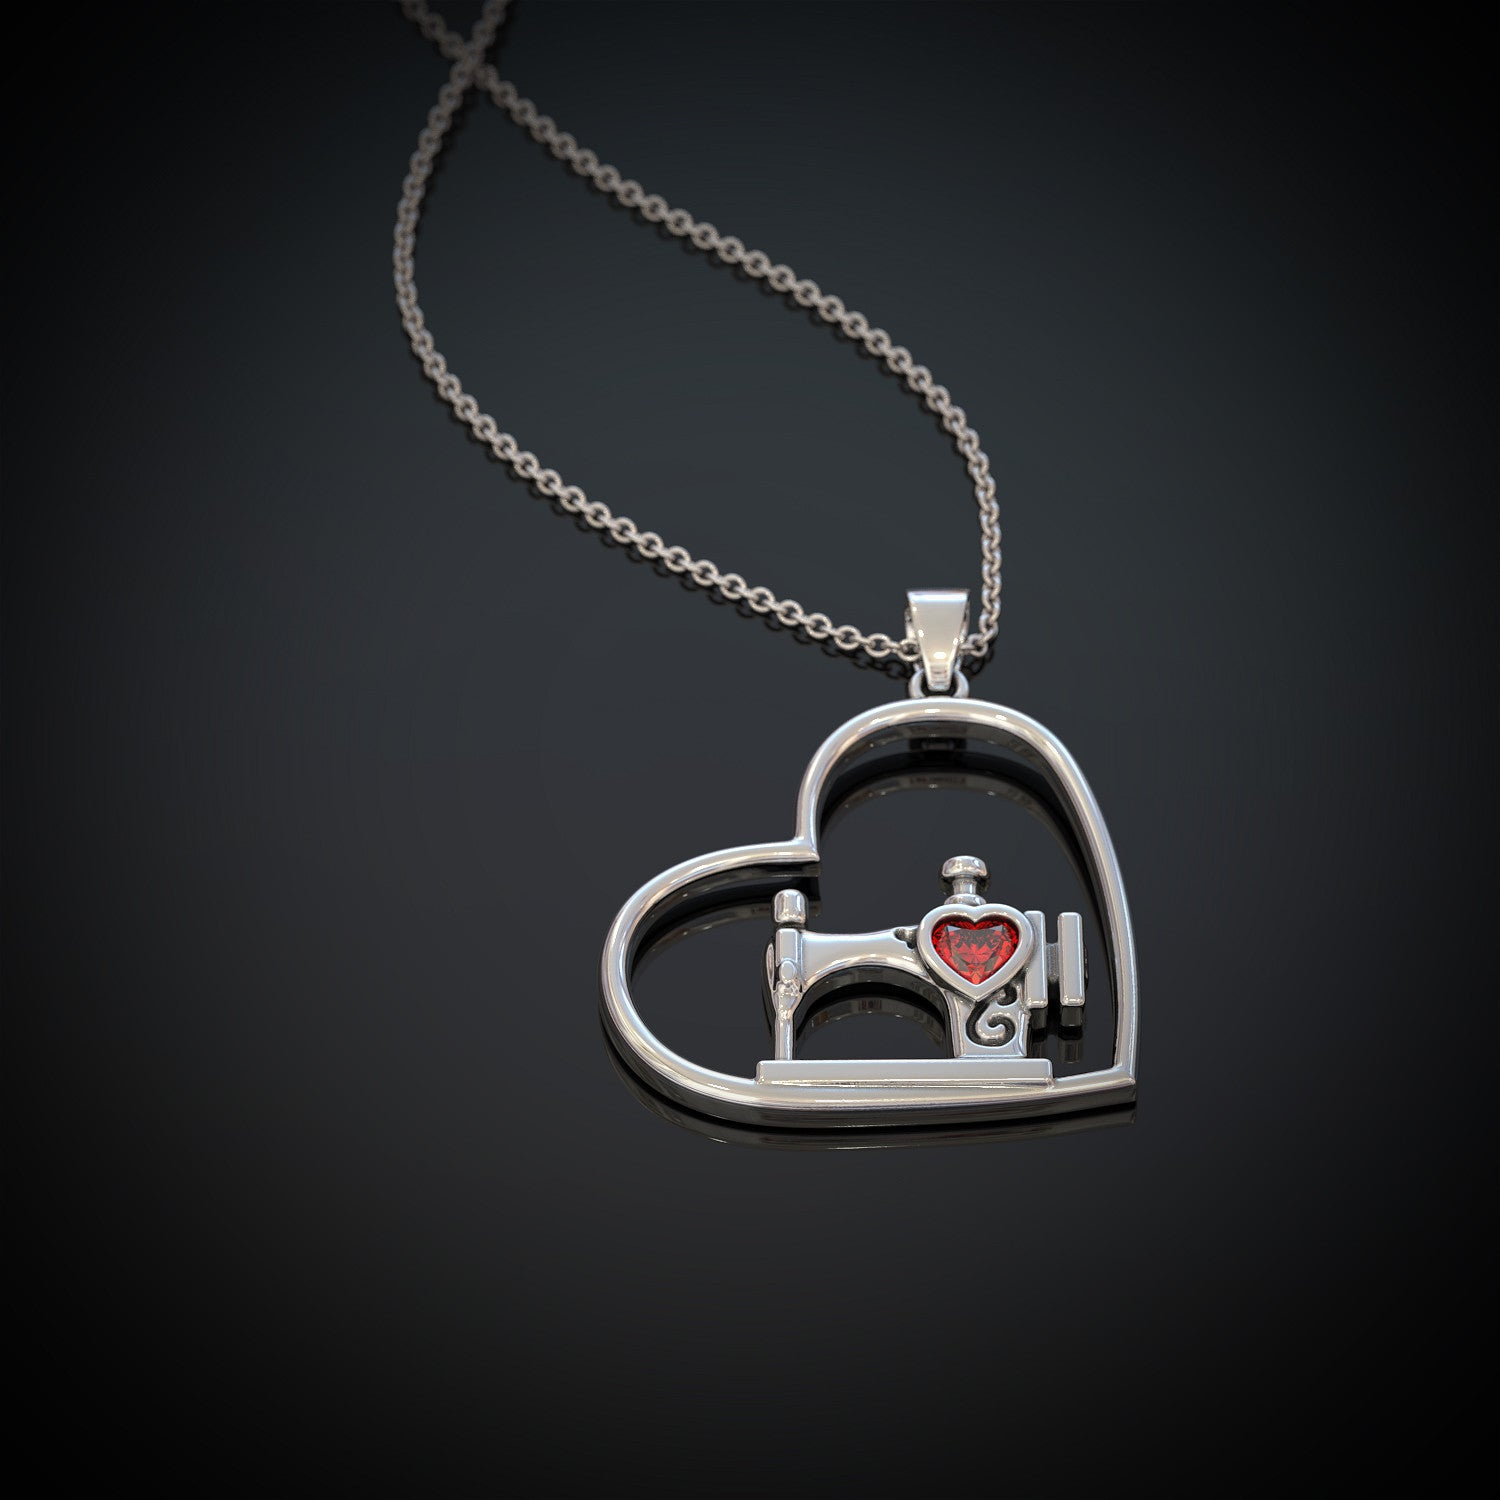 Heart Sewing Necklace